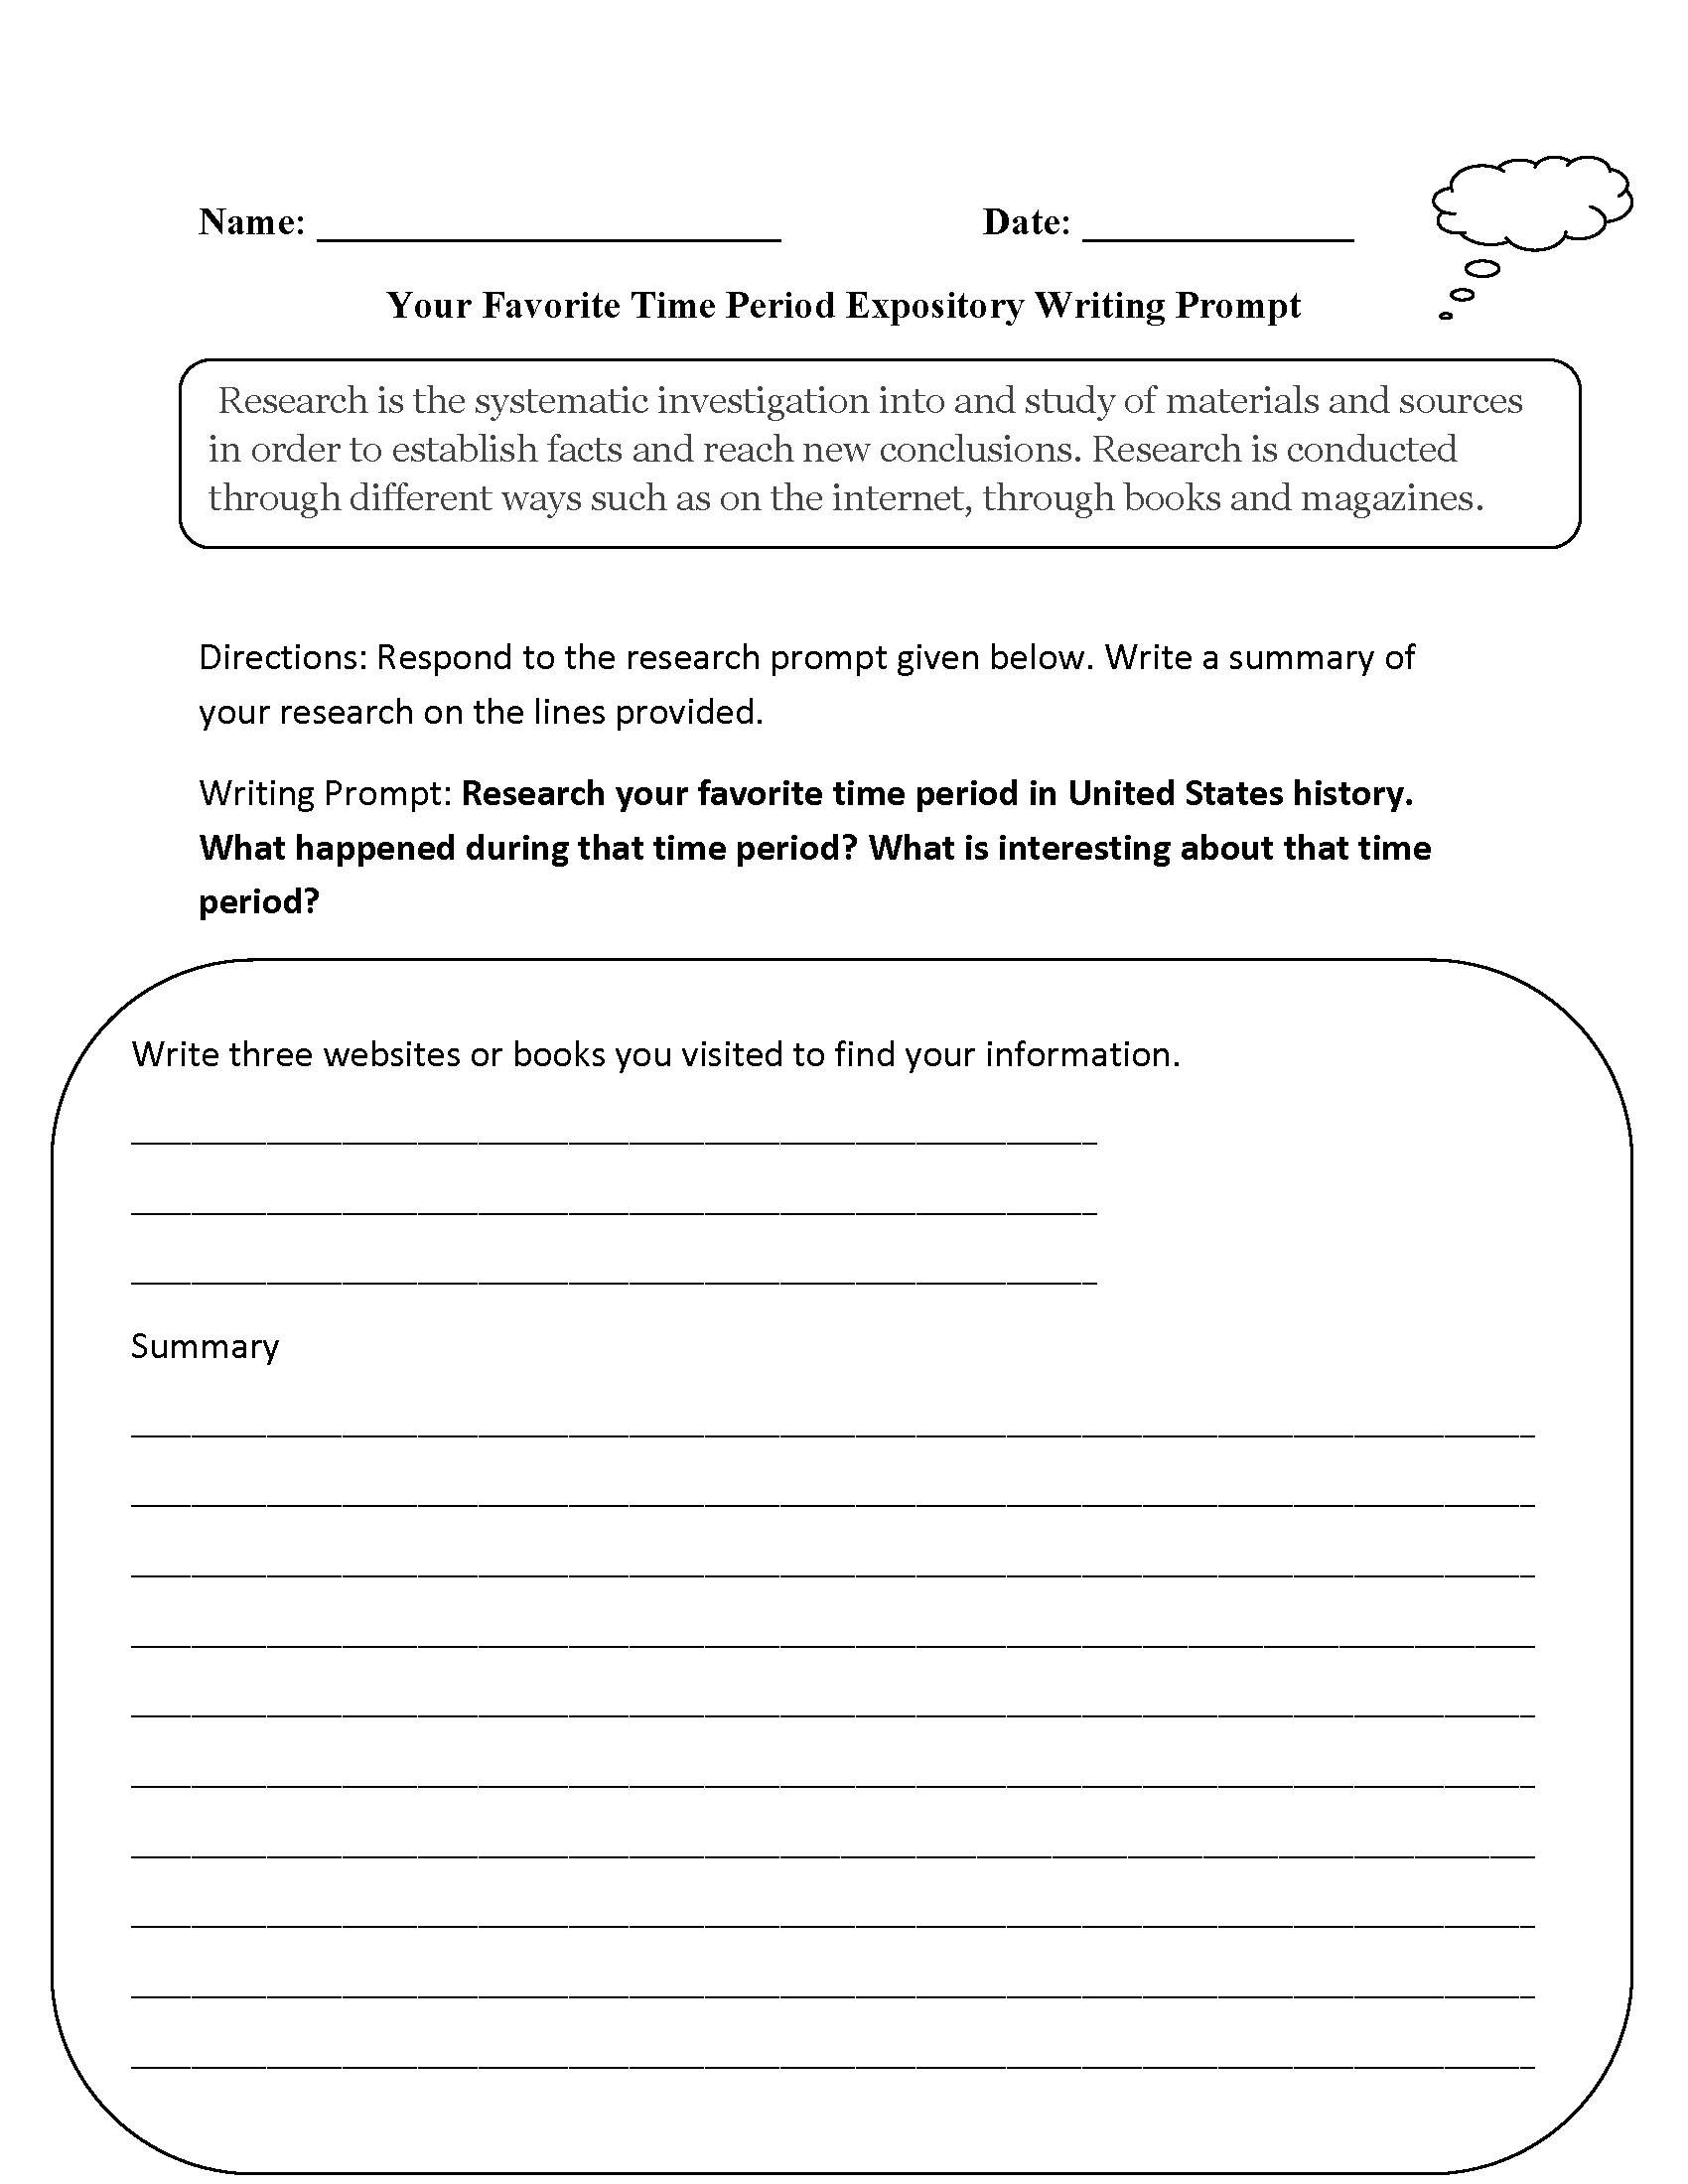 Favorite Time Period Expository Writing Prompt Worksheet